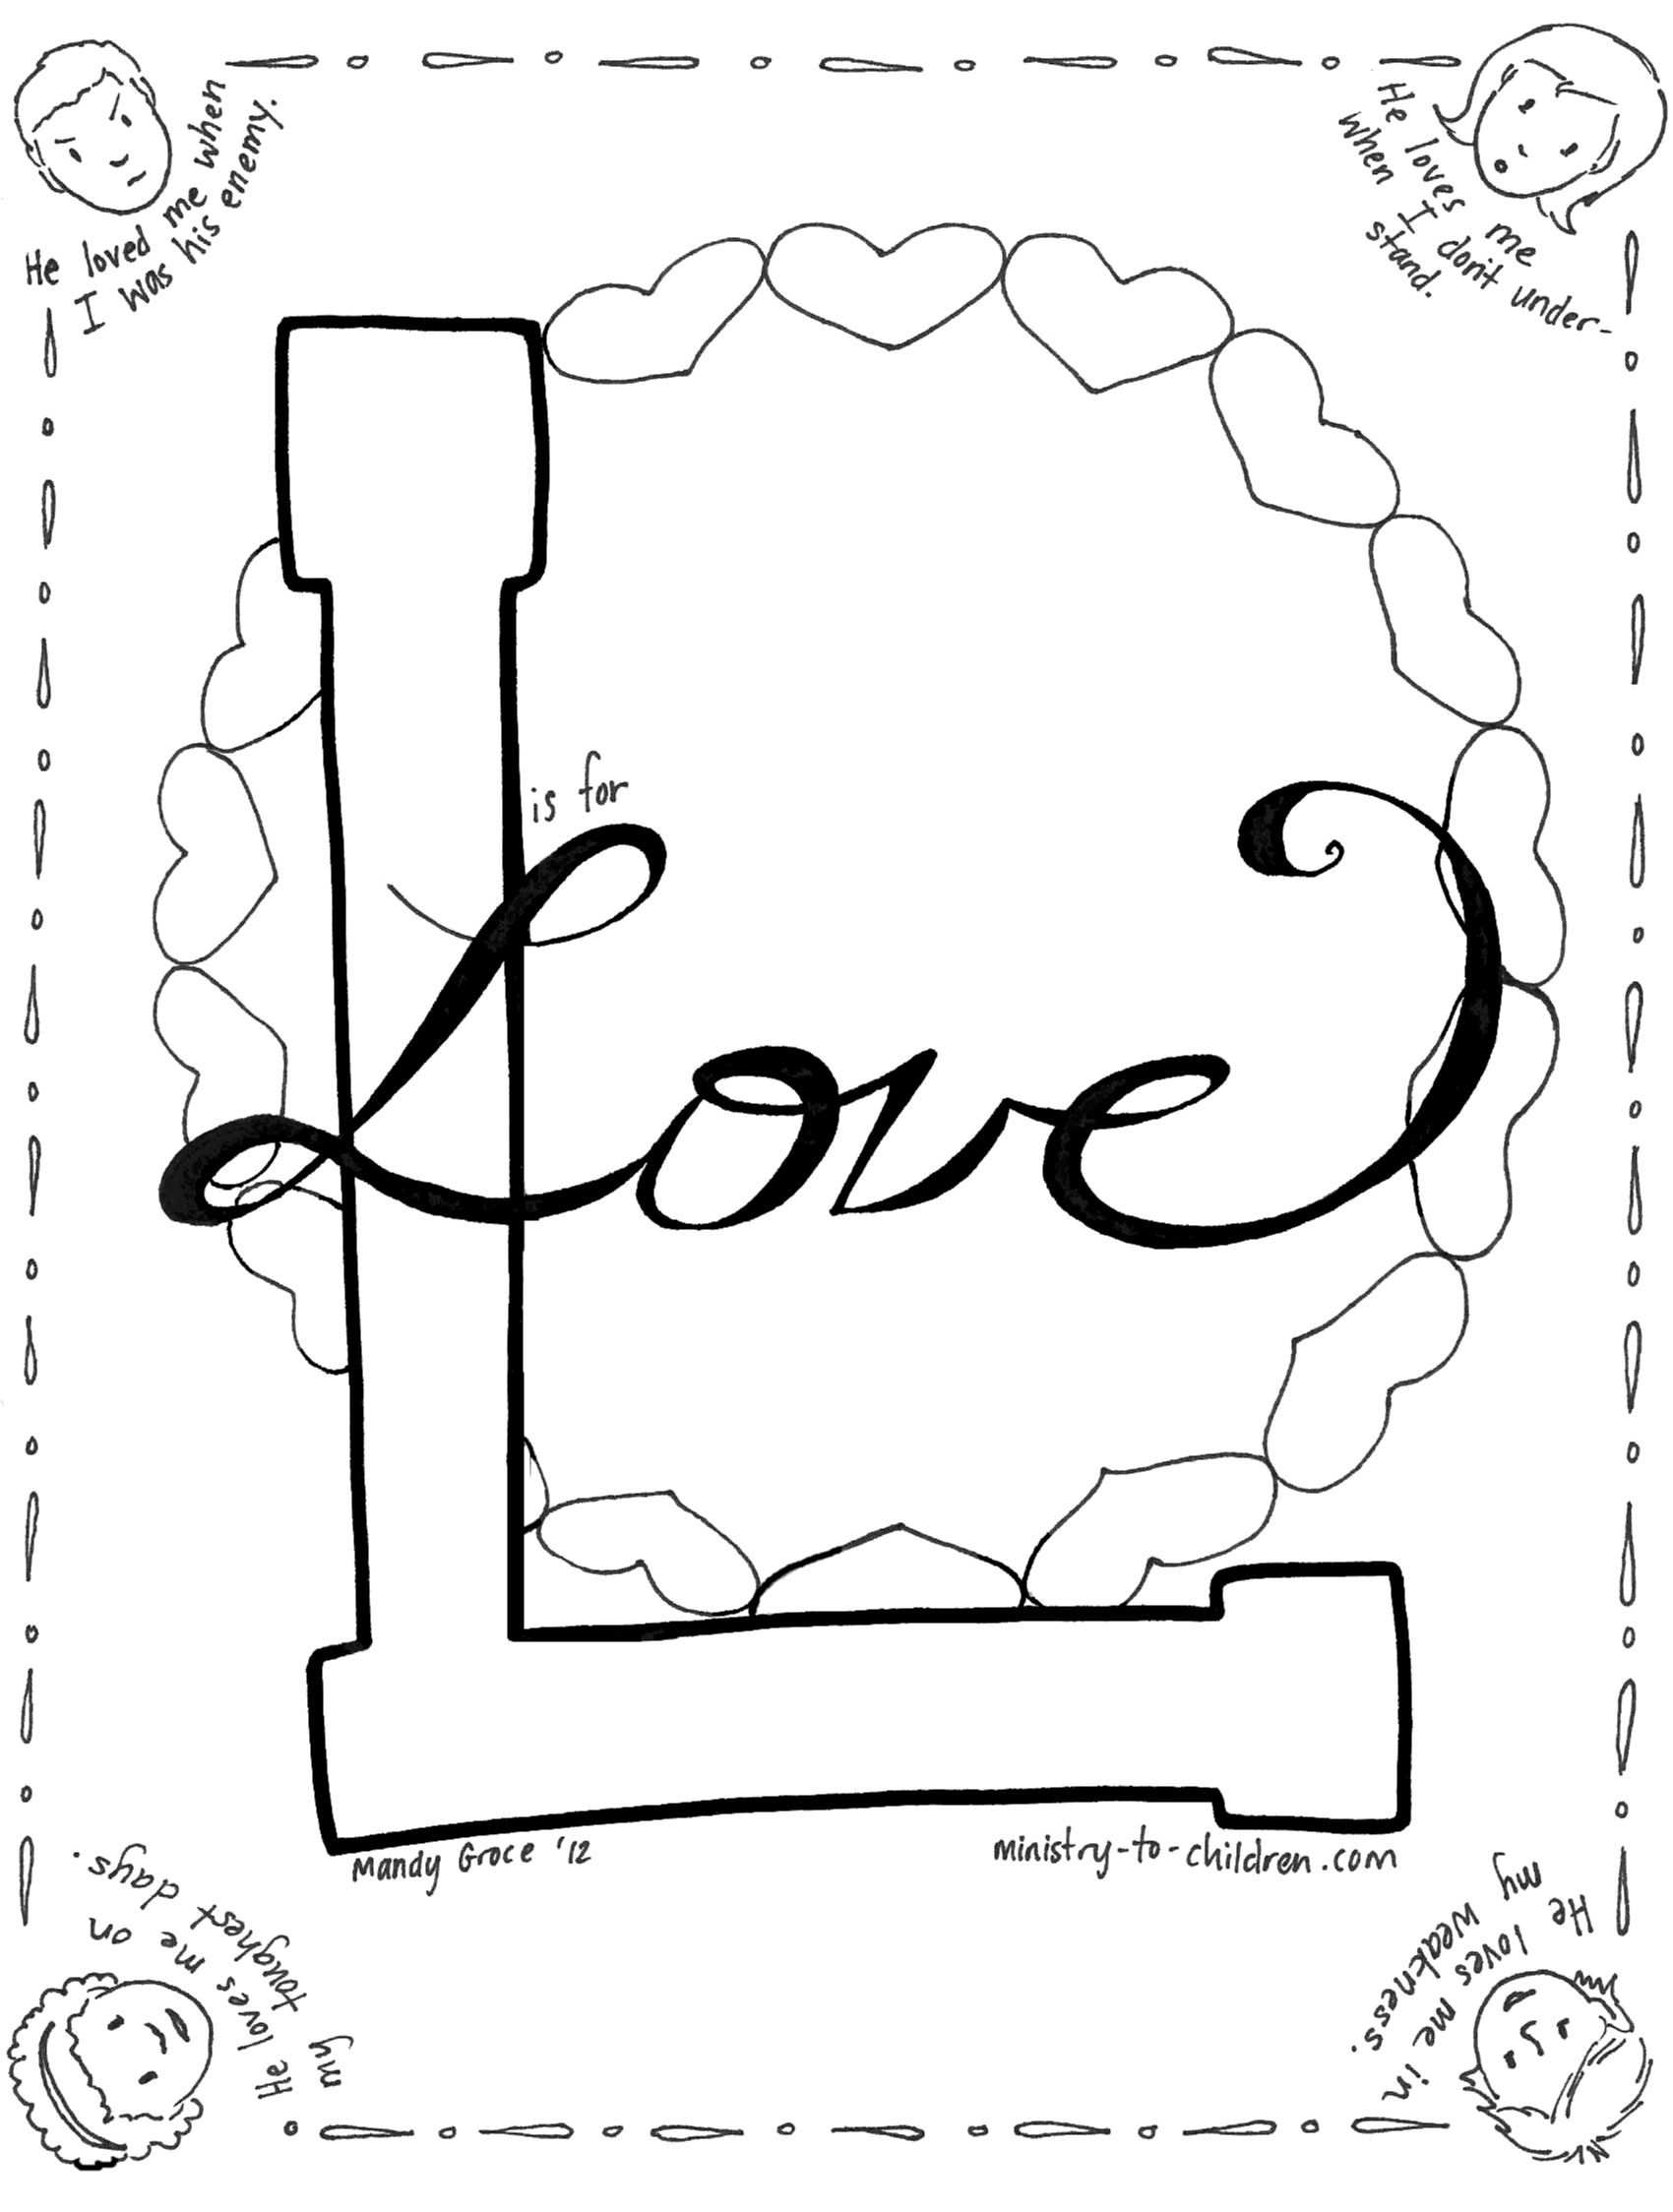 The Next Sheet In Our Free Bible Alphabet Coloring Book Is All About Gods Love Four Children On This Page Each Have A Caption That Describes